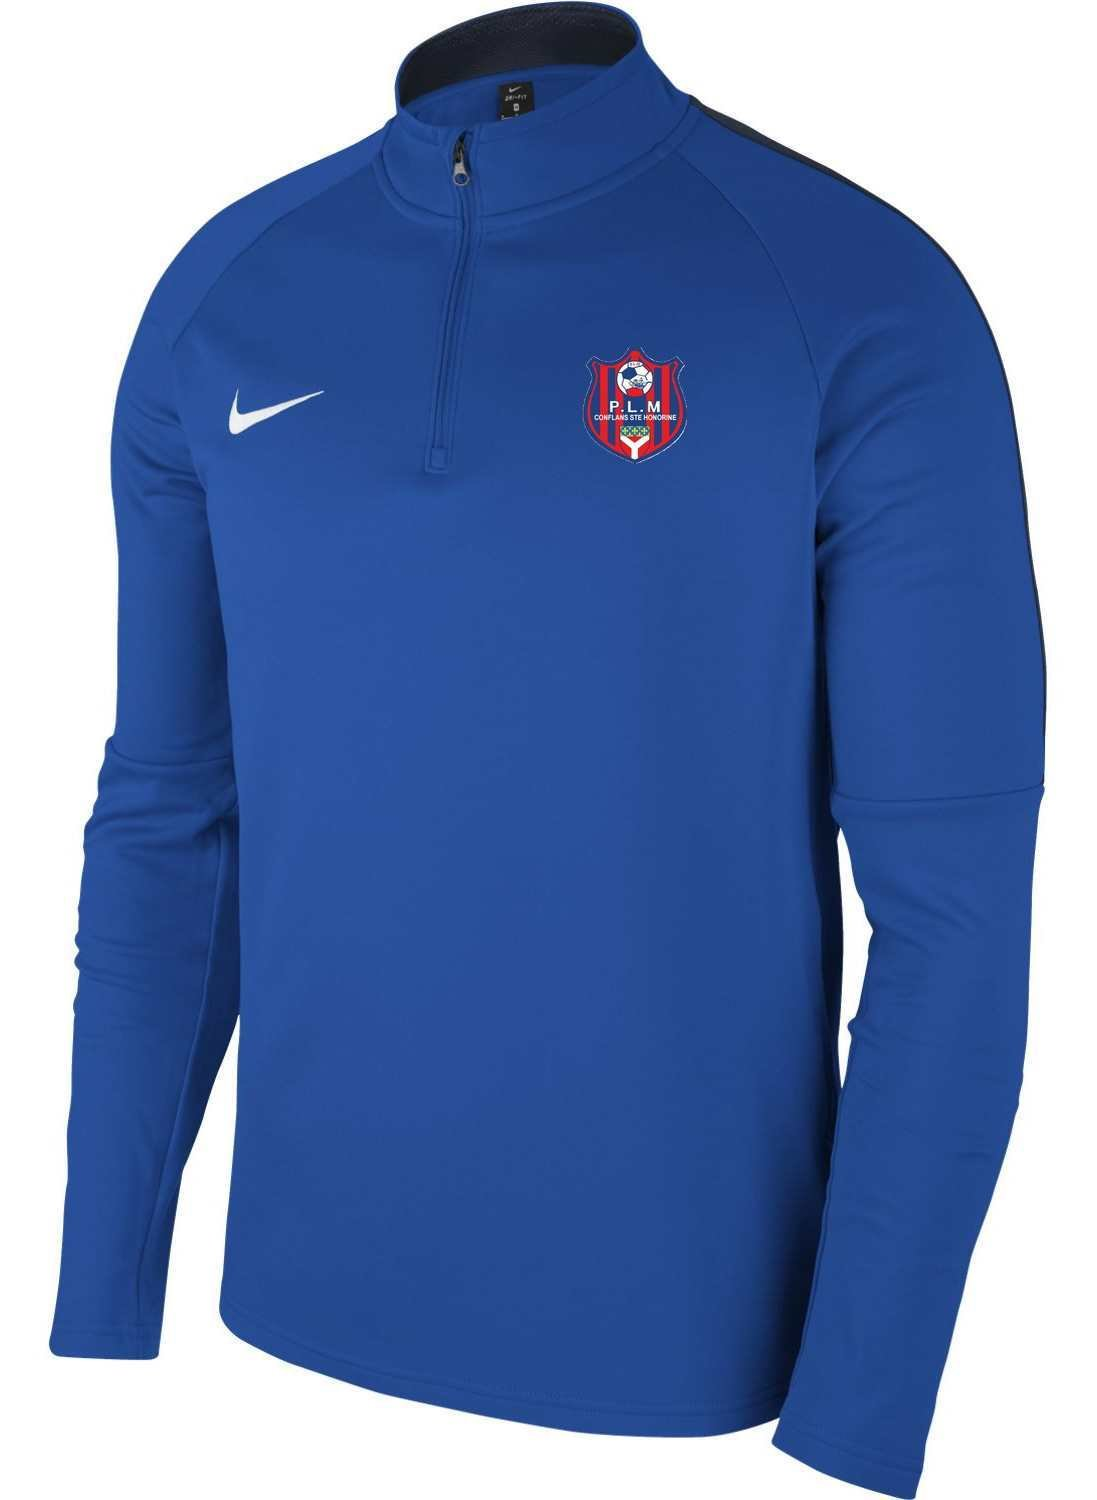 SWEAT 1/2 ZIP AC18 ENFANT NIKE PLM CONFLANS